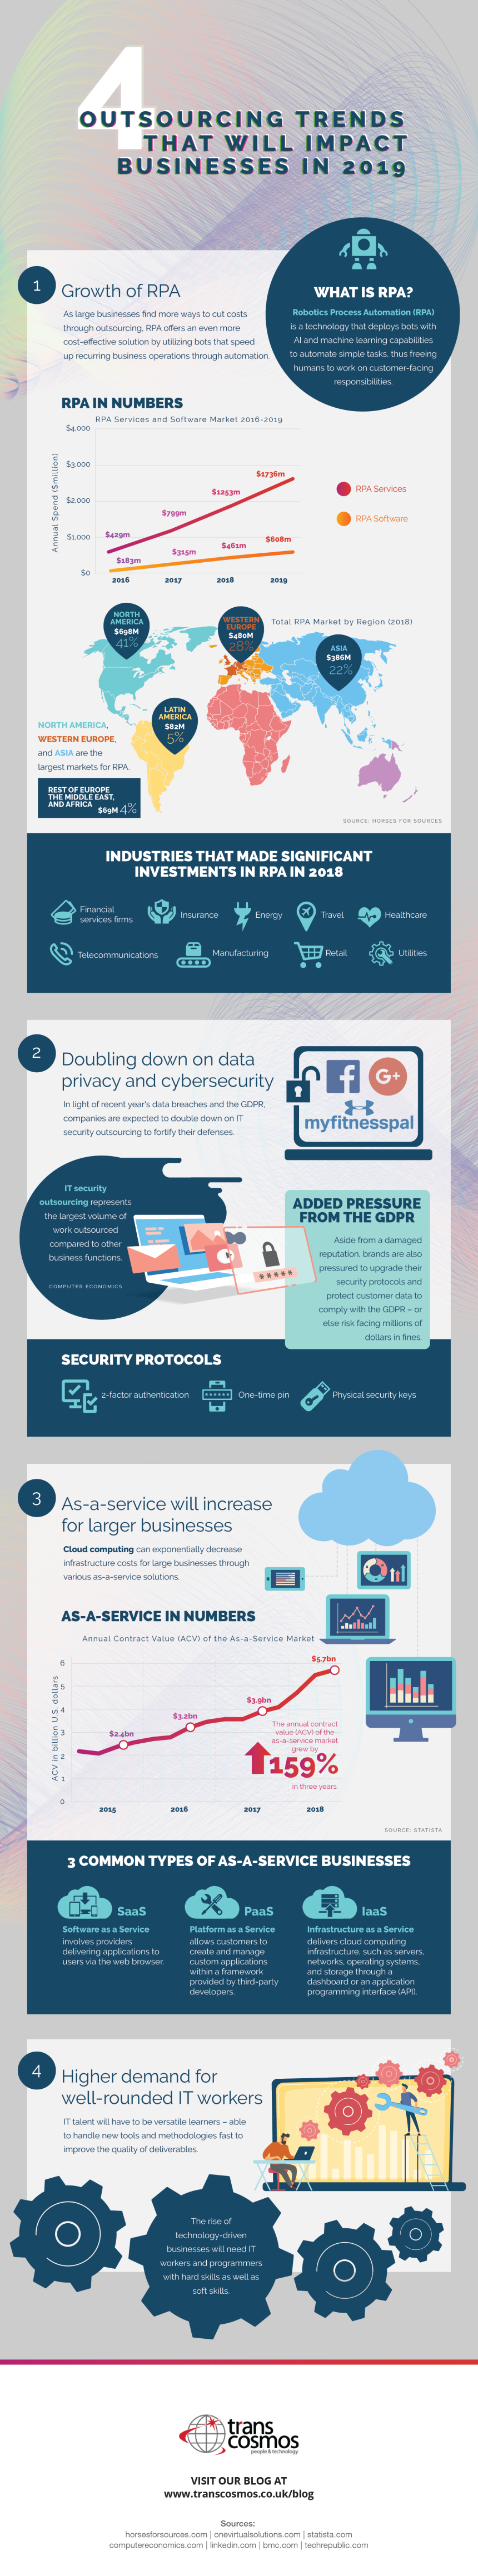 Infographic on 2019 Outsourcing Trends